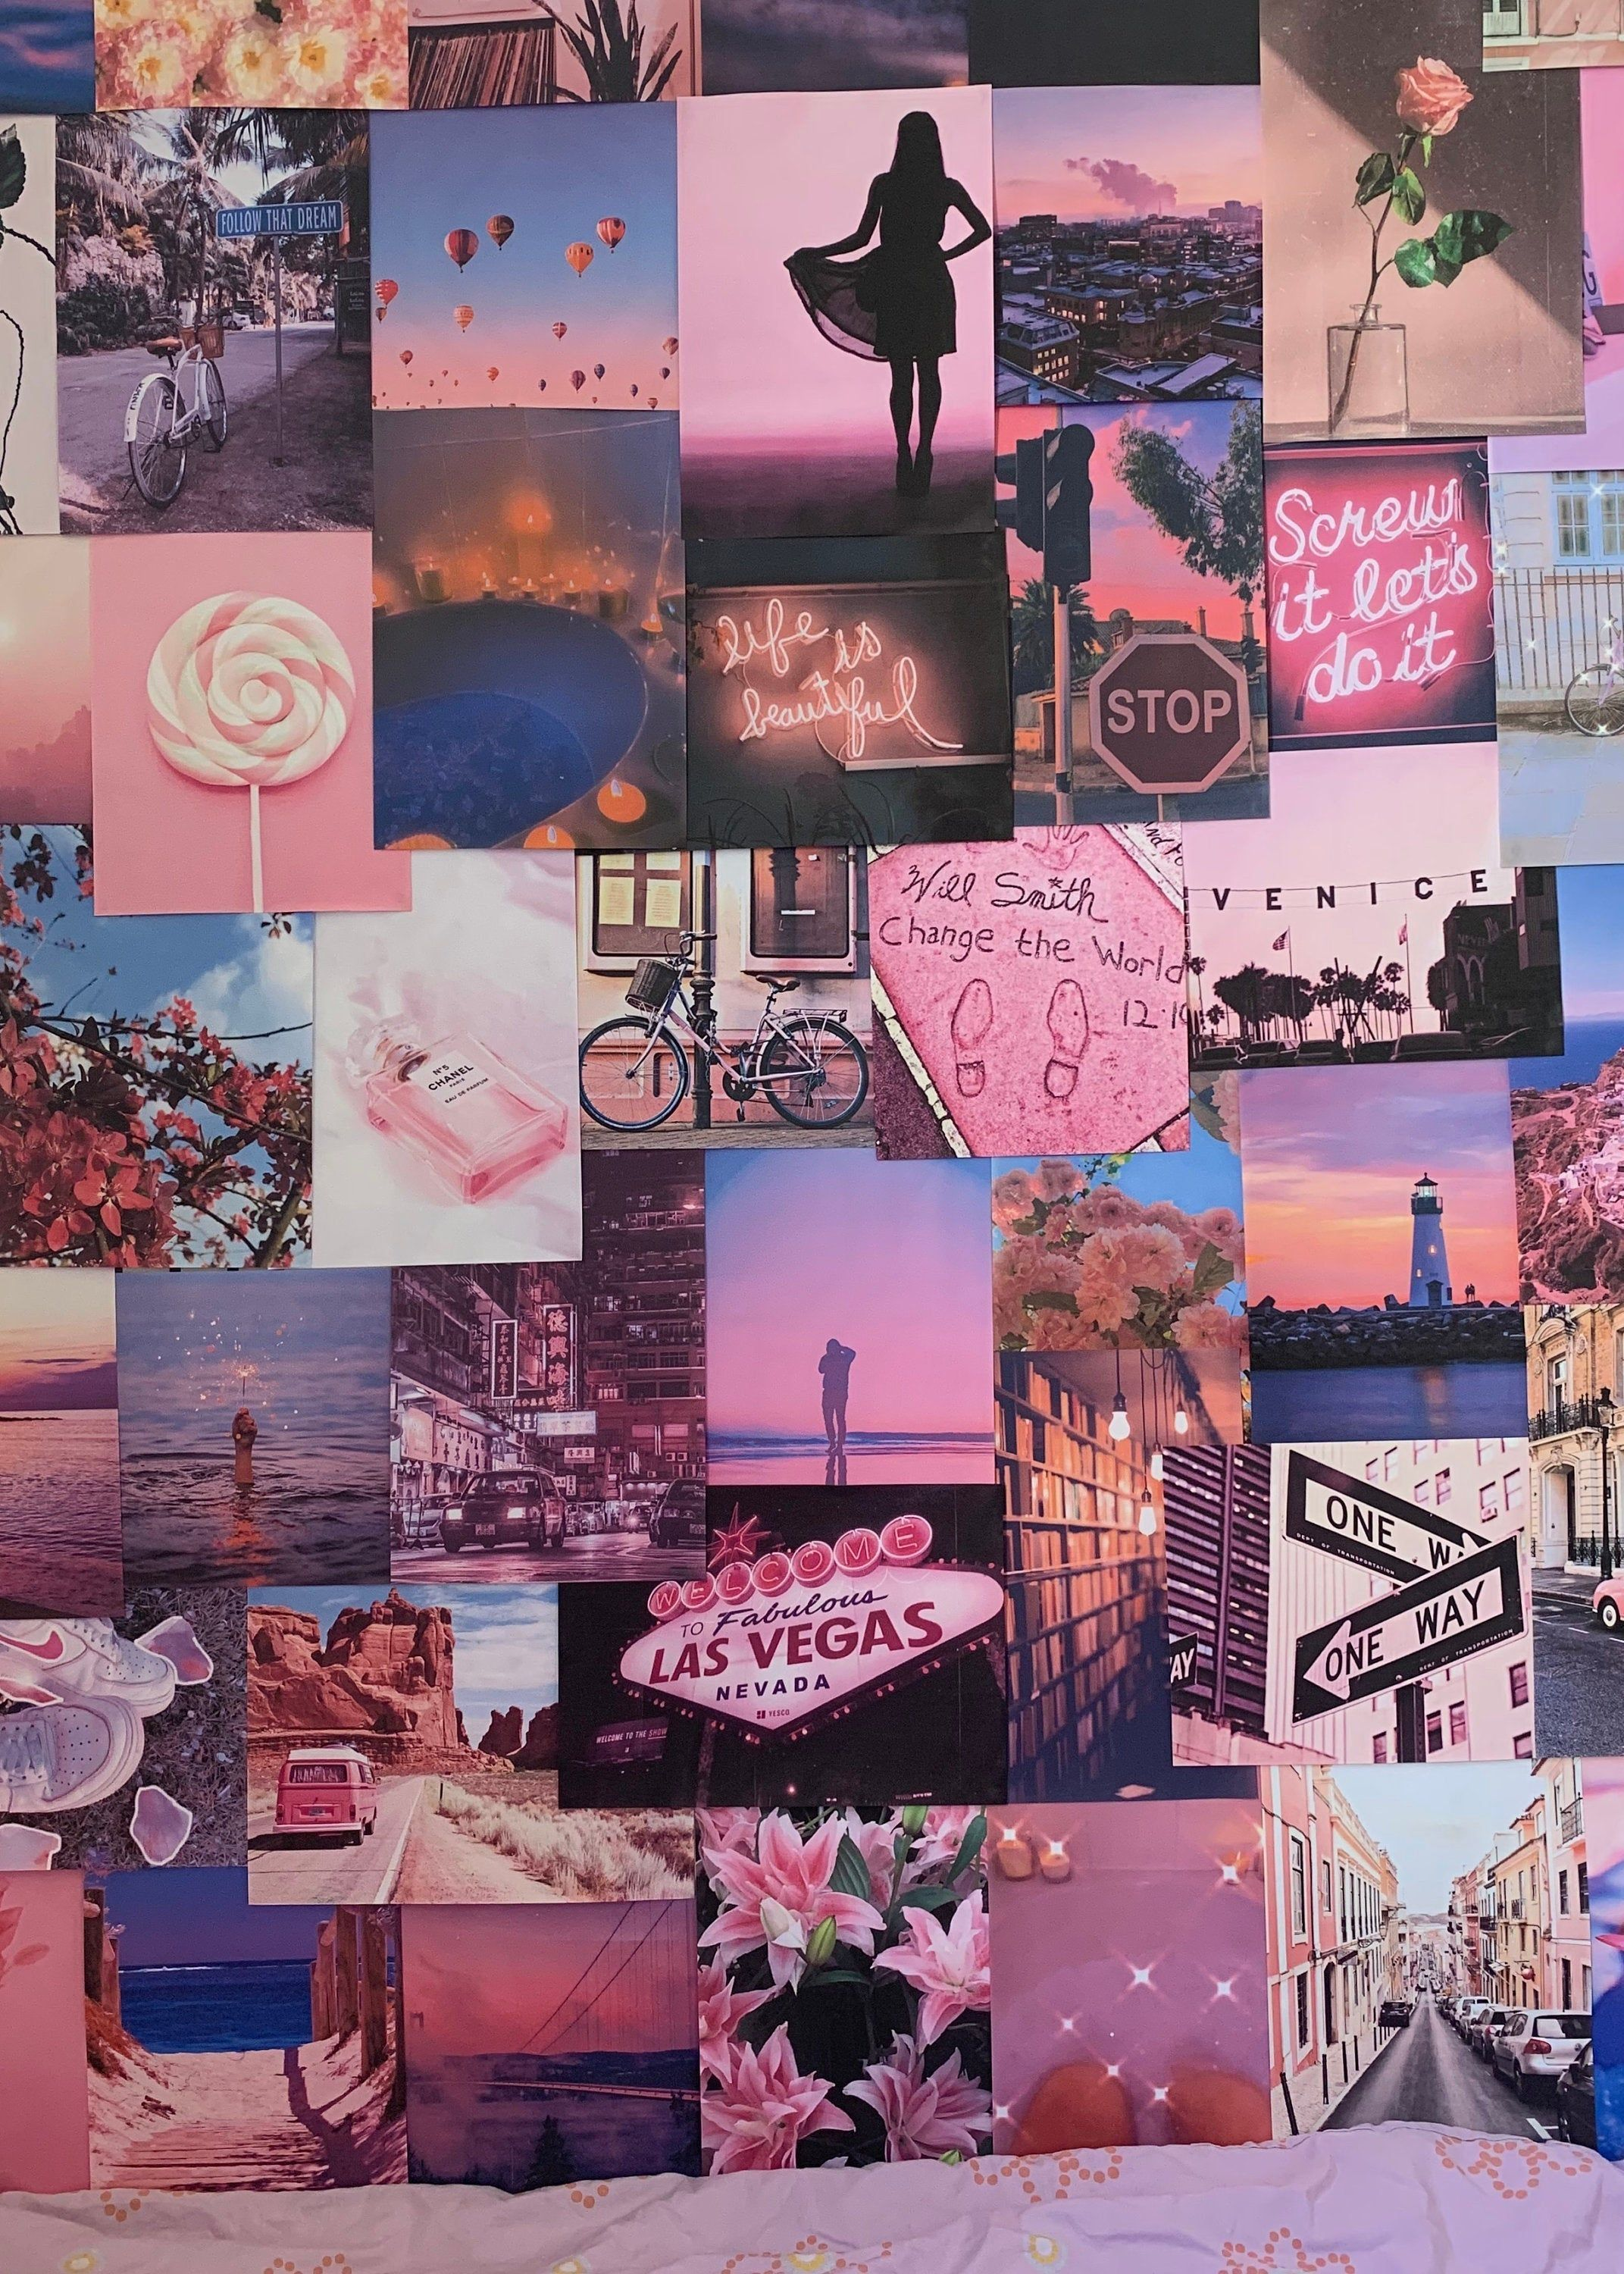 Pin on Pink Wall Collage